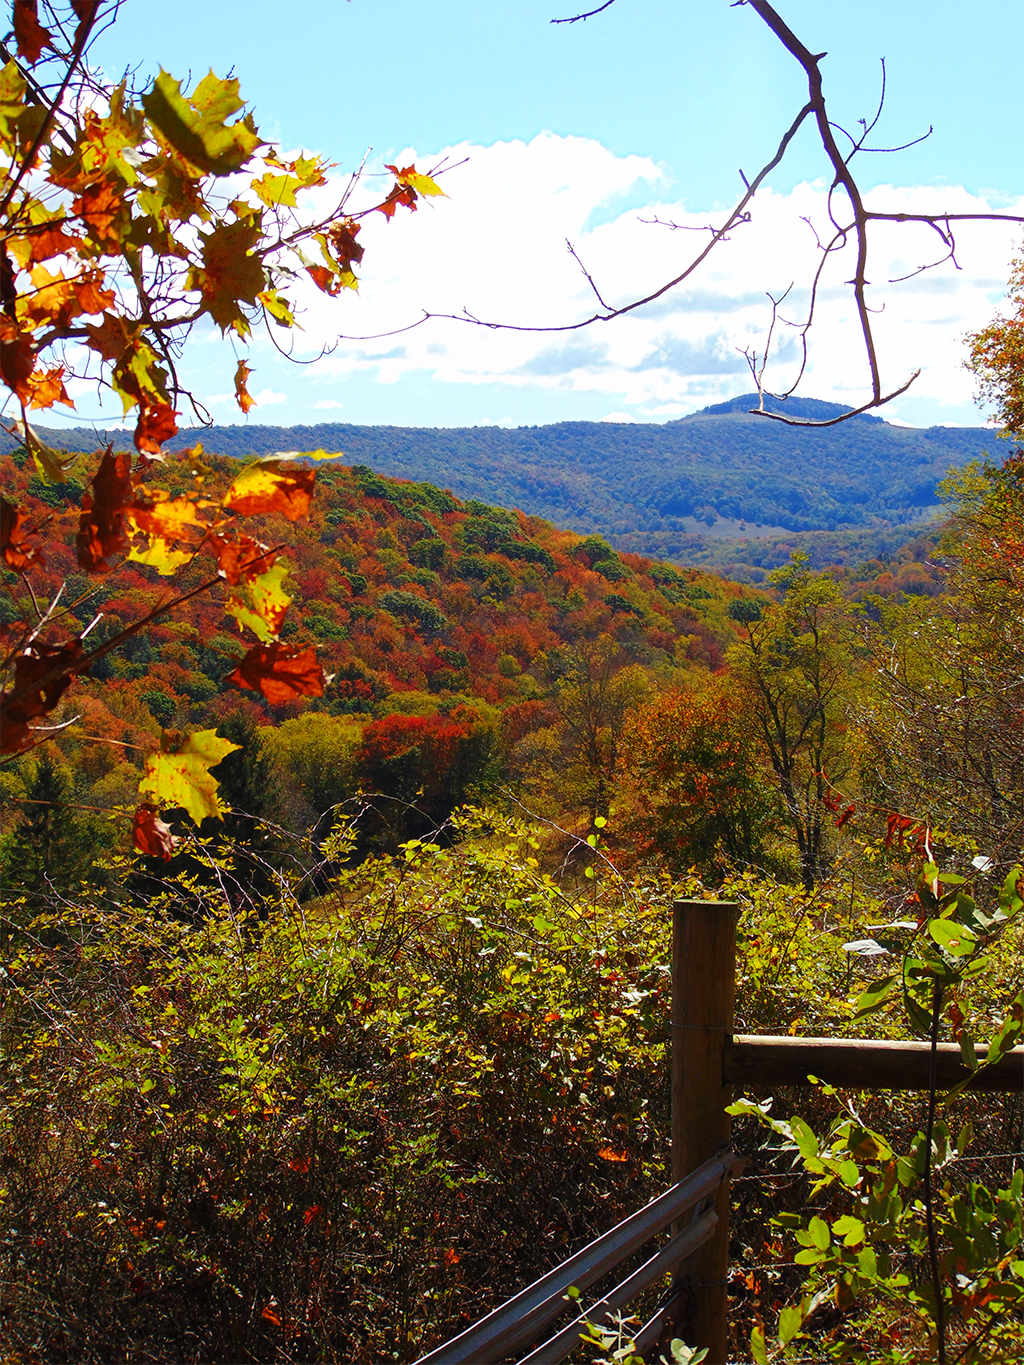 A long shot from an overlook shows that read is quickly becoming the dominant color of the forest.